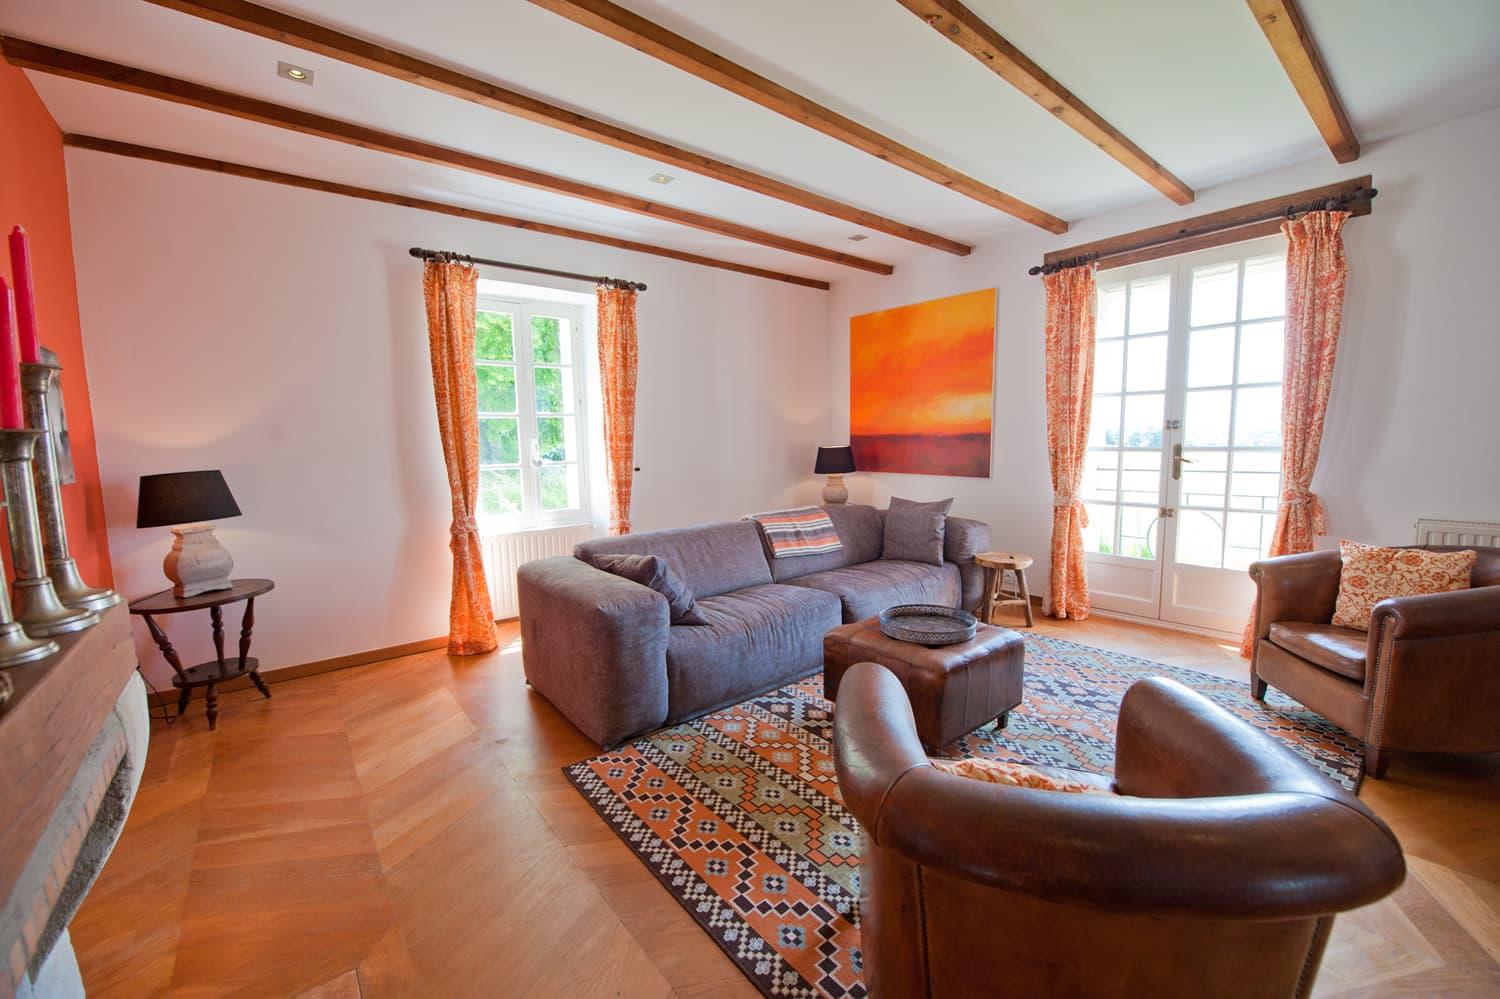 Living room in Lot-et-Garonne rental accommodation